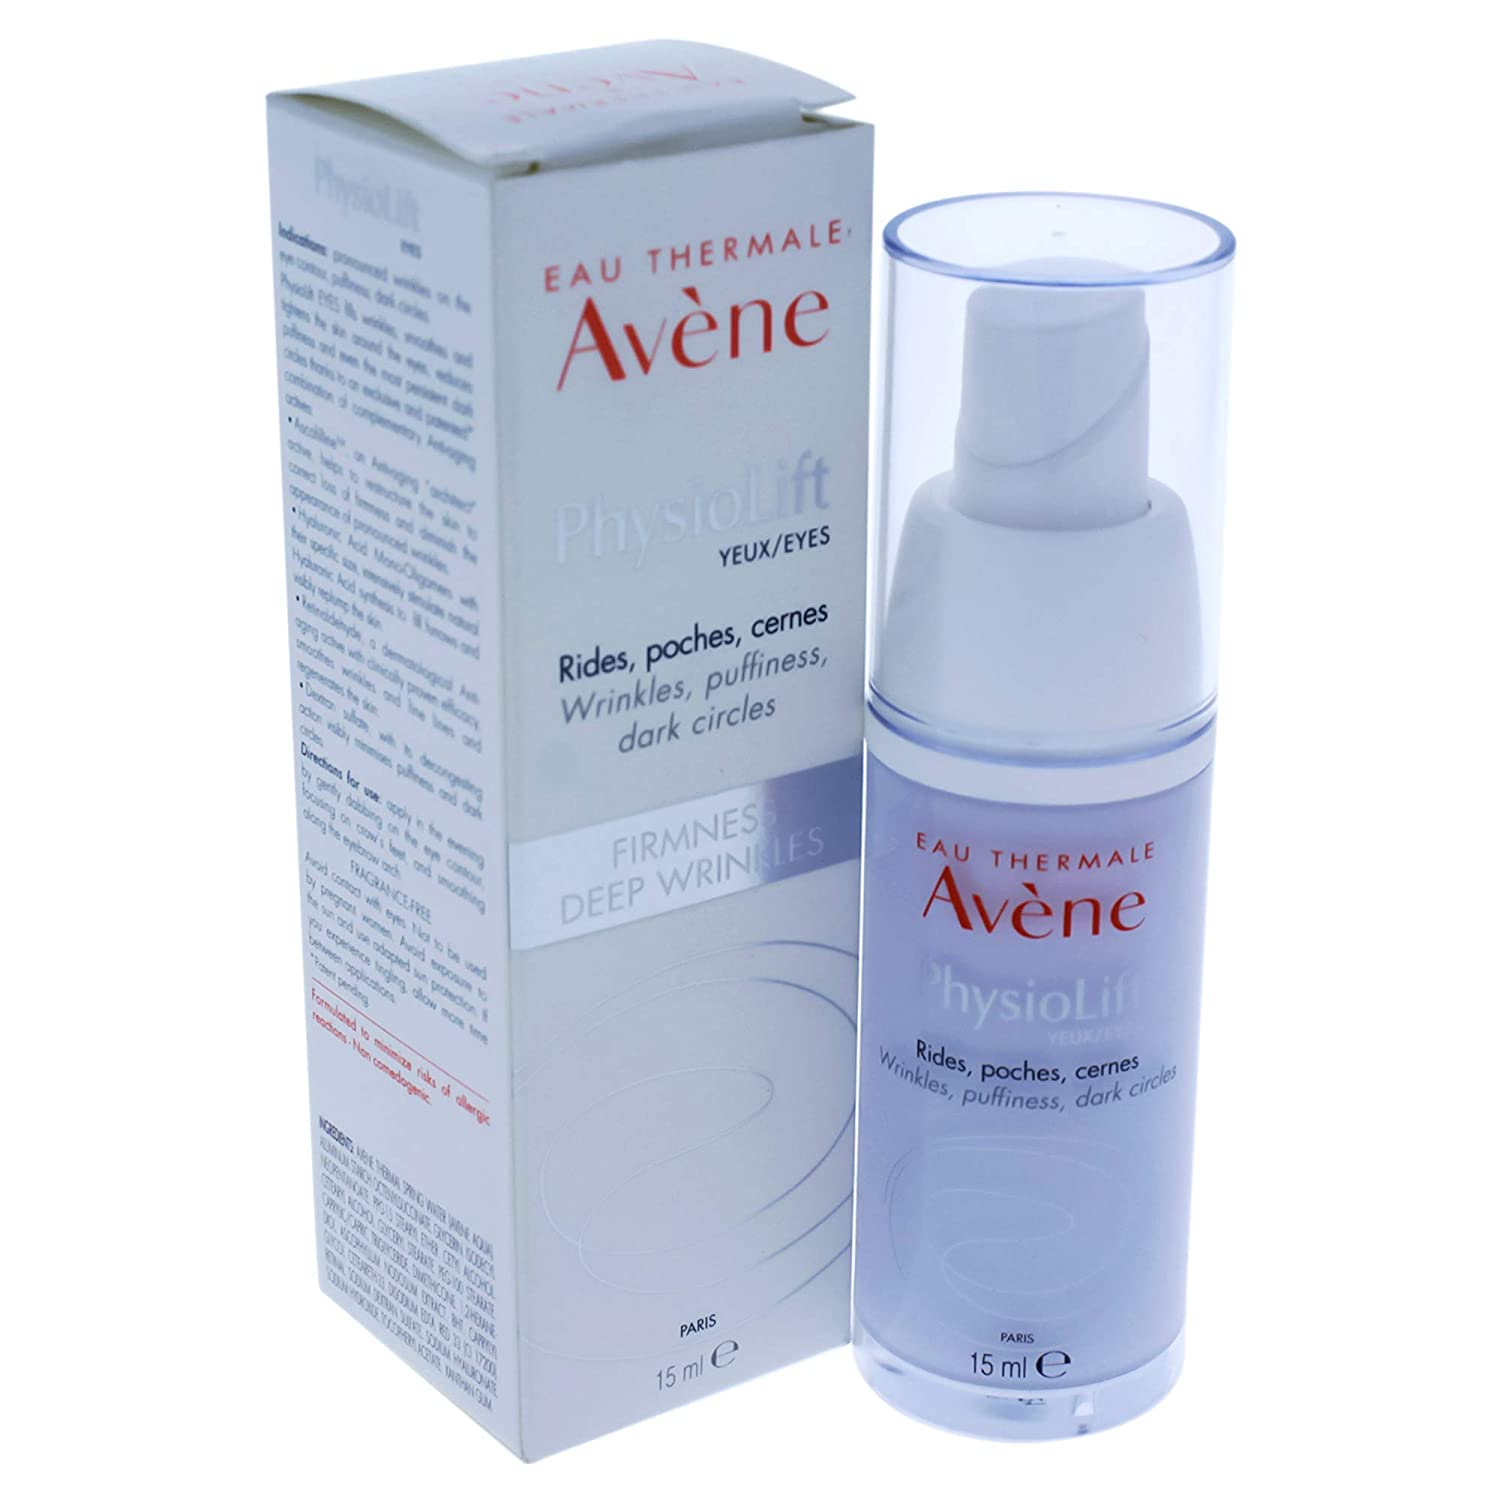 Eau Thermale Avene PhysioLift Eye Contour Care